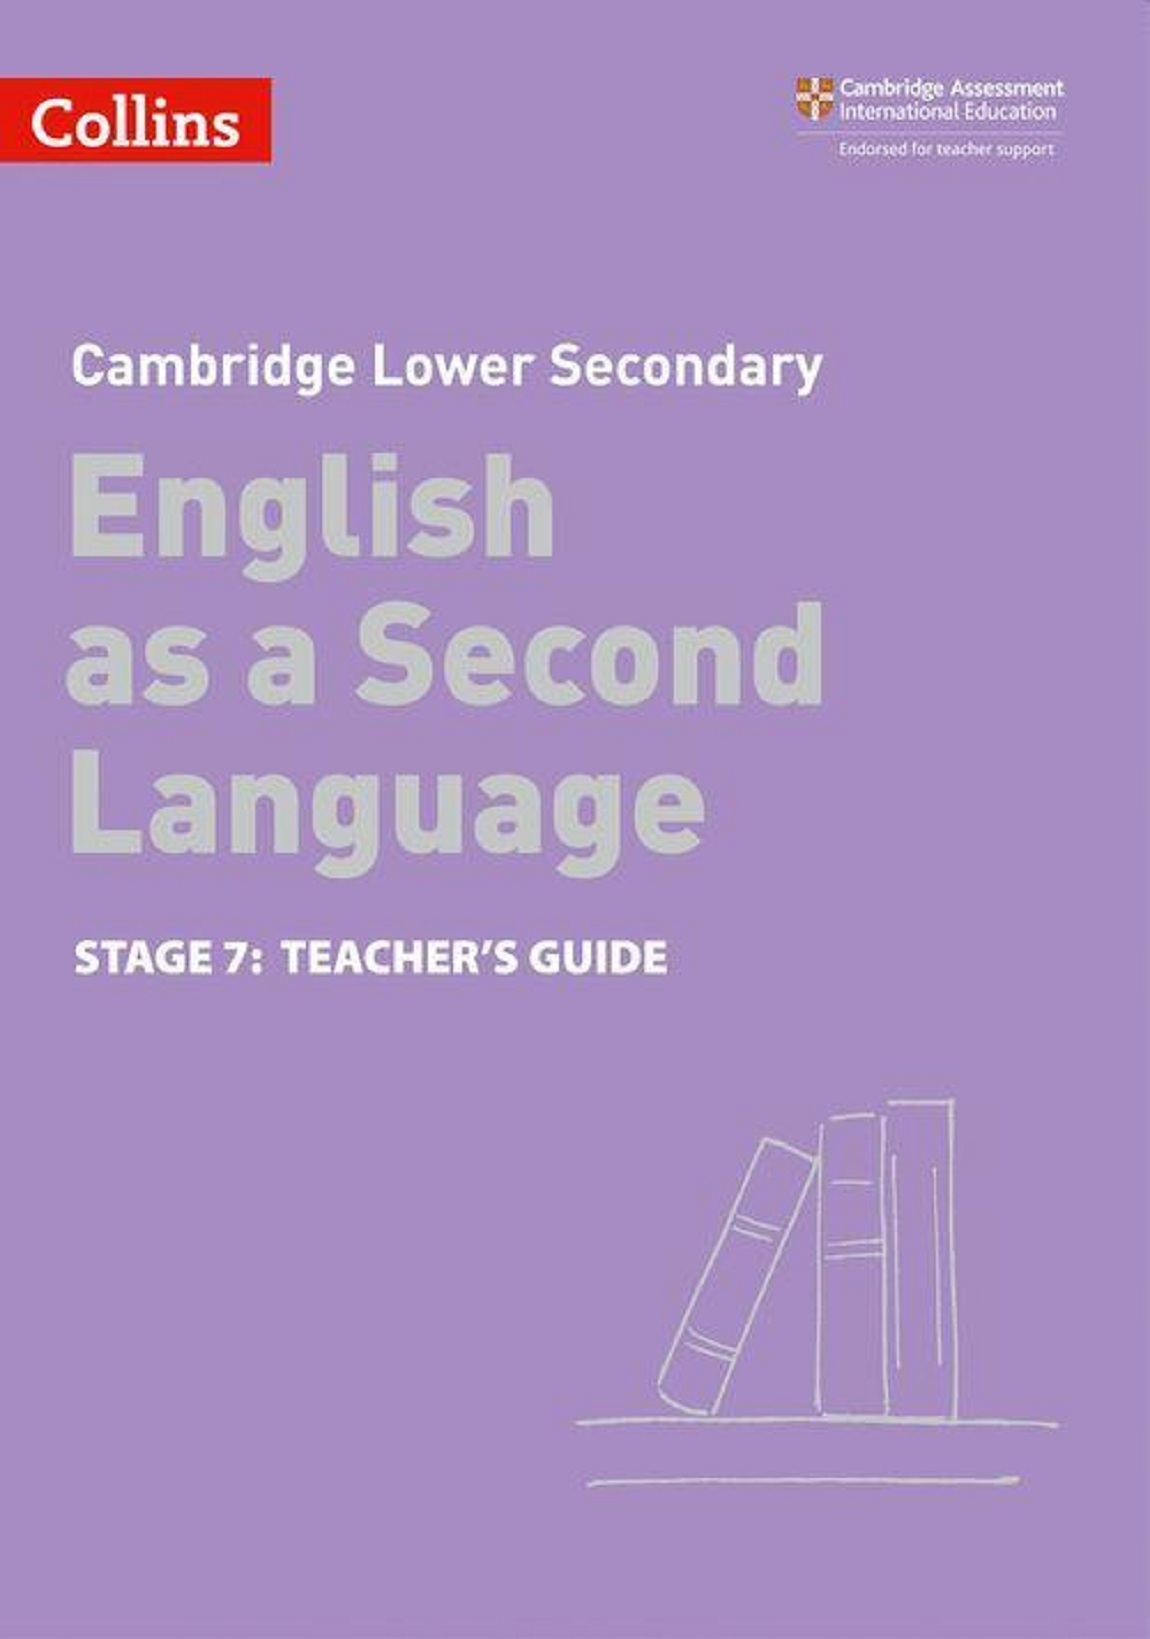 Collins English Stage 7 Teacher's Guide Grade 6 as a Second Language Lower Secondary